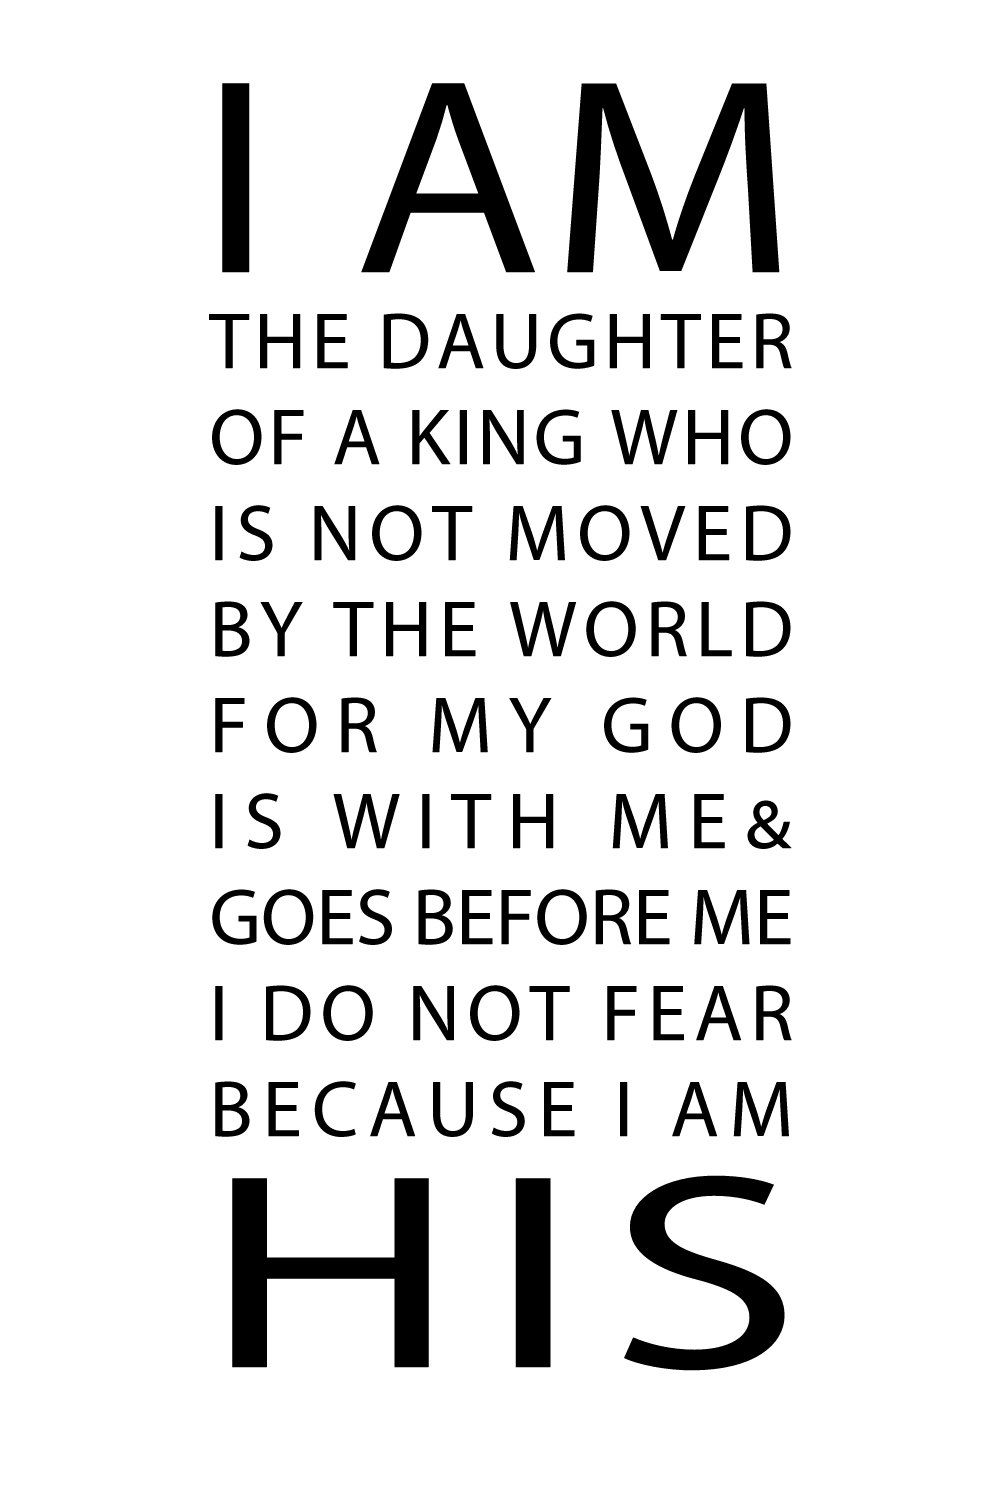 I Am His I Am His Wall Decal I Am The Daughter Of A King Decal